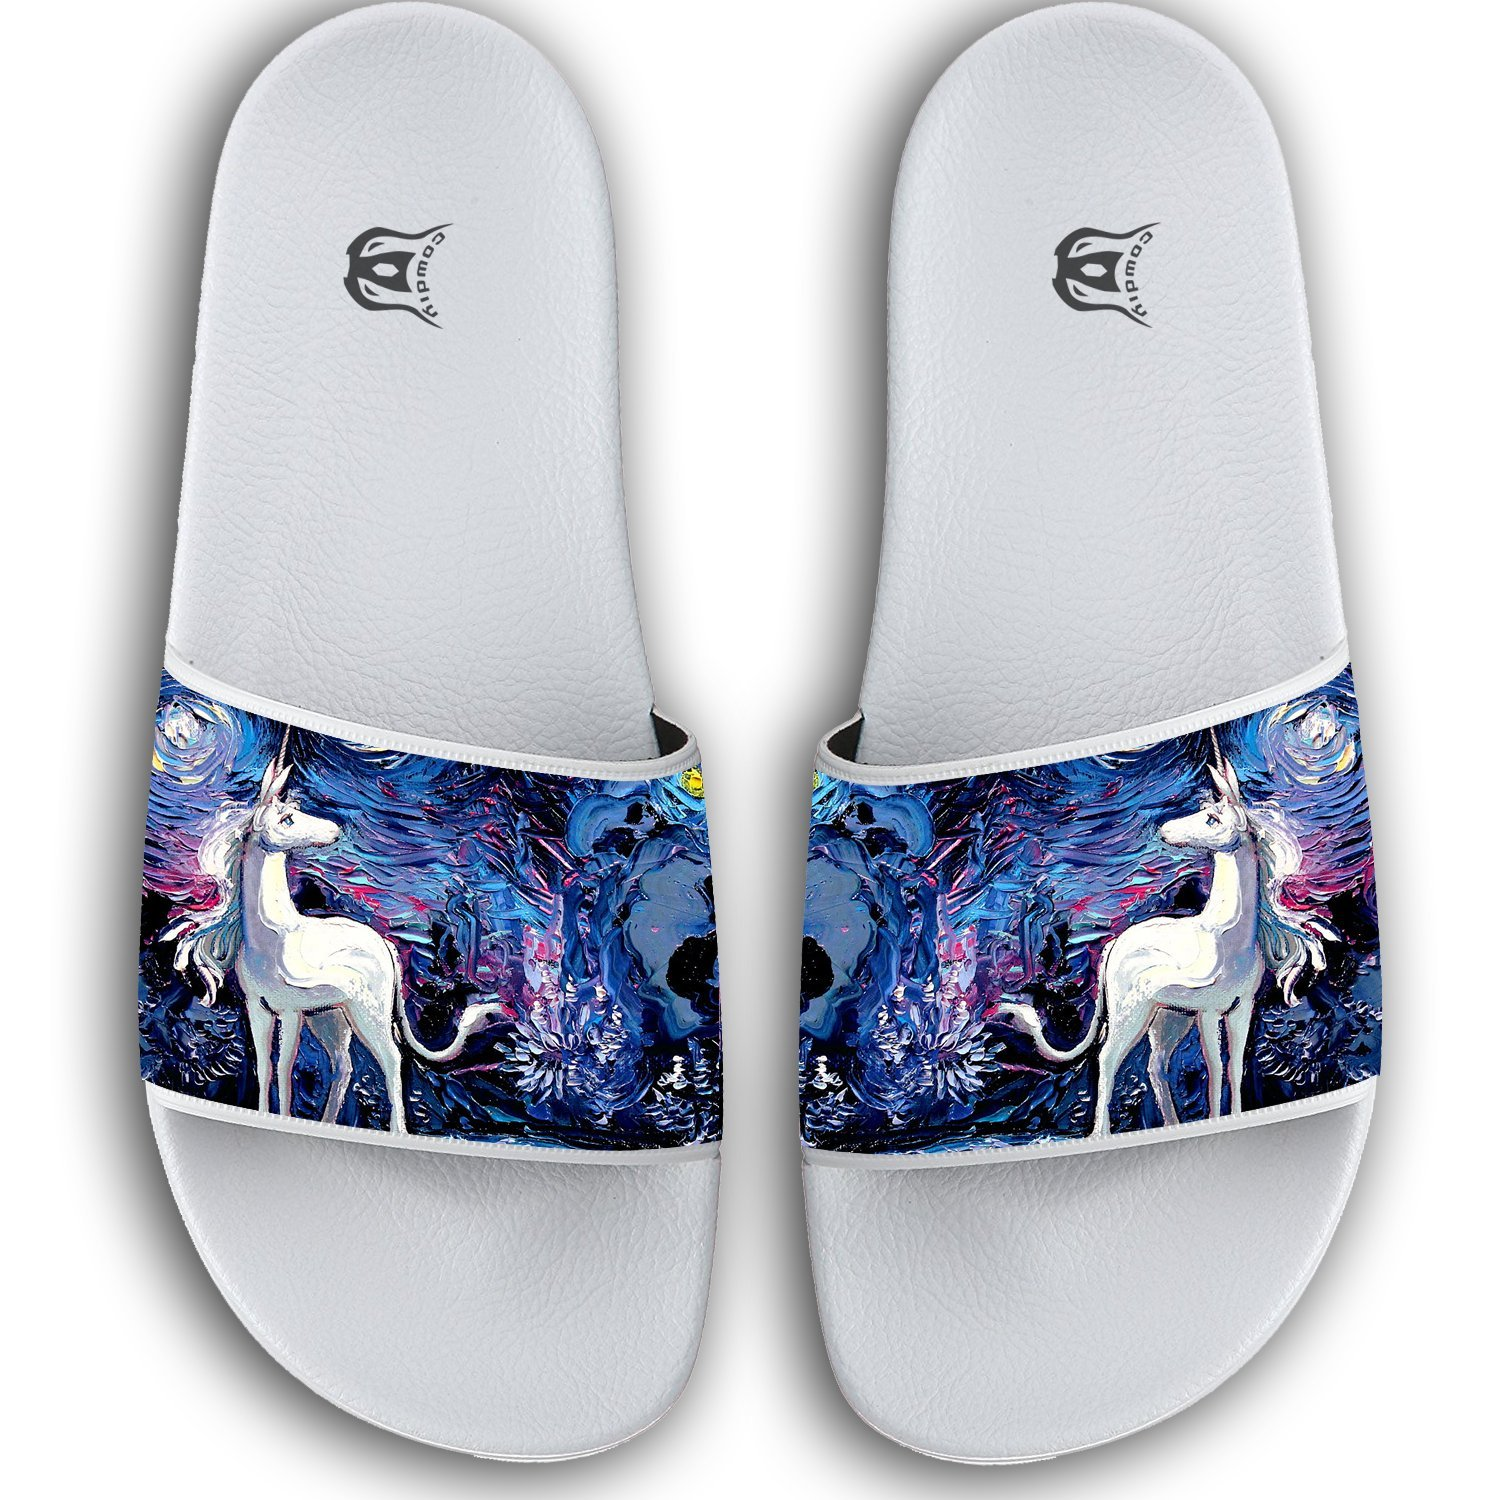 Abstract Unicorn Horse Slippers Skid-proof Indoor Outdoor Flat Flip Flops Beach Pool Slide Sandals For Men Women by Xianjingshui (Image #1)